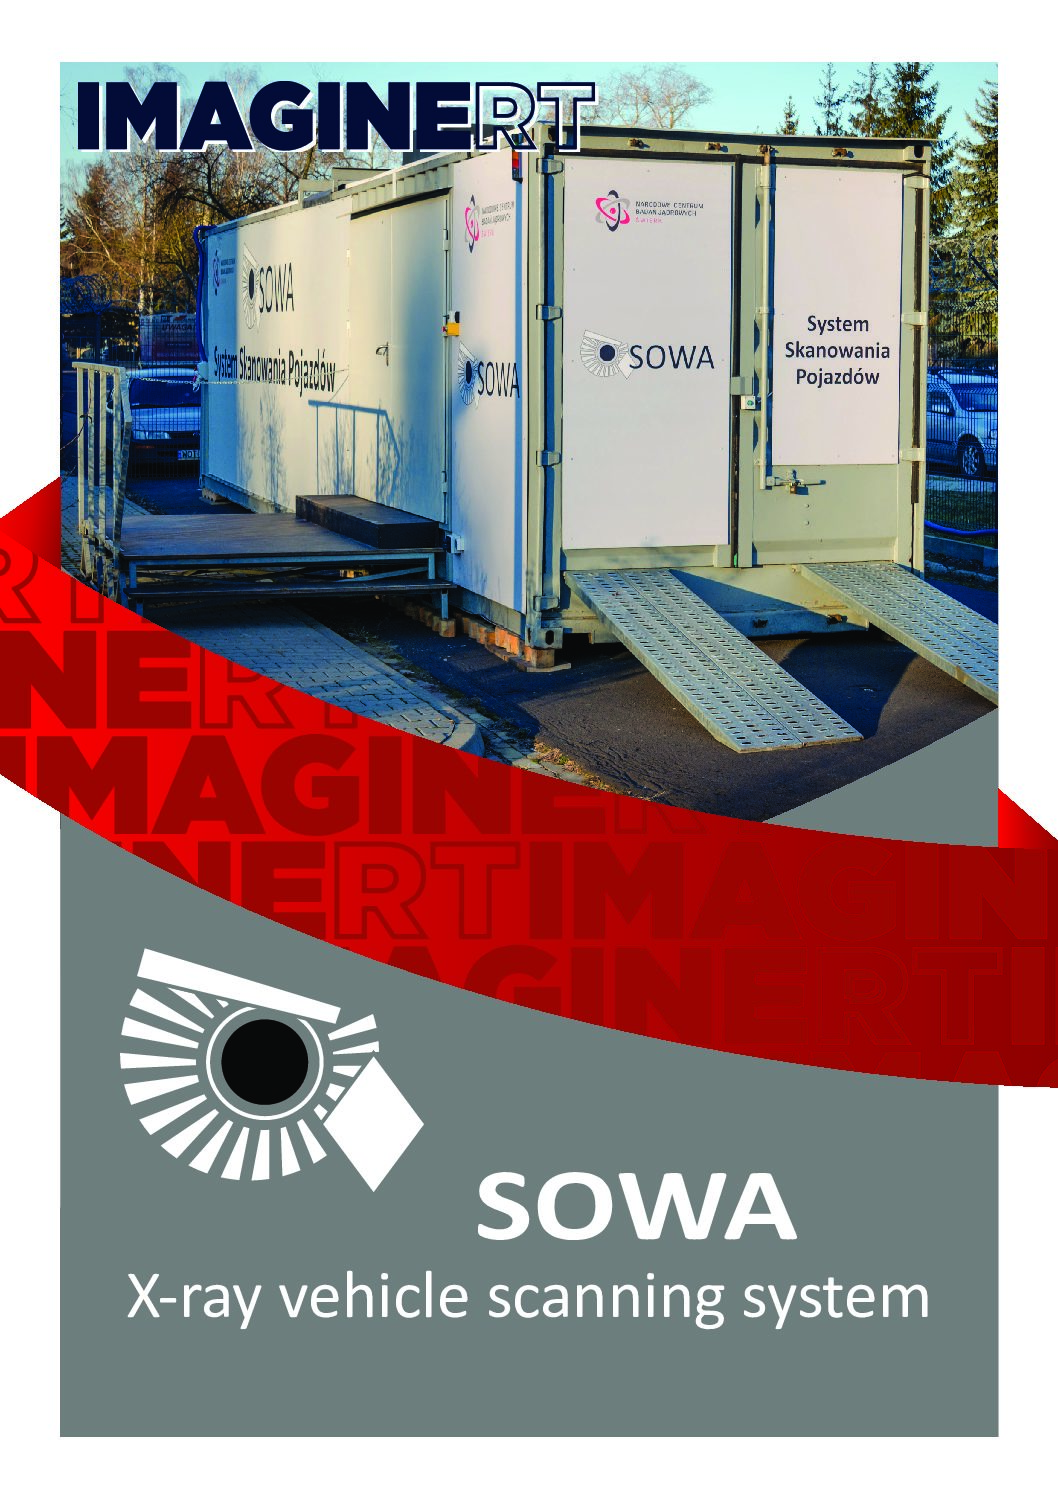 SOWA X-ray vehicle scanning system